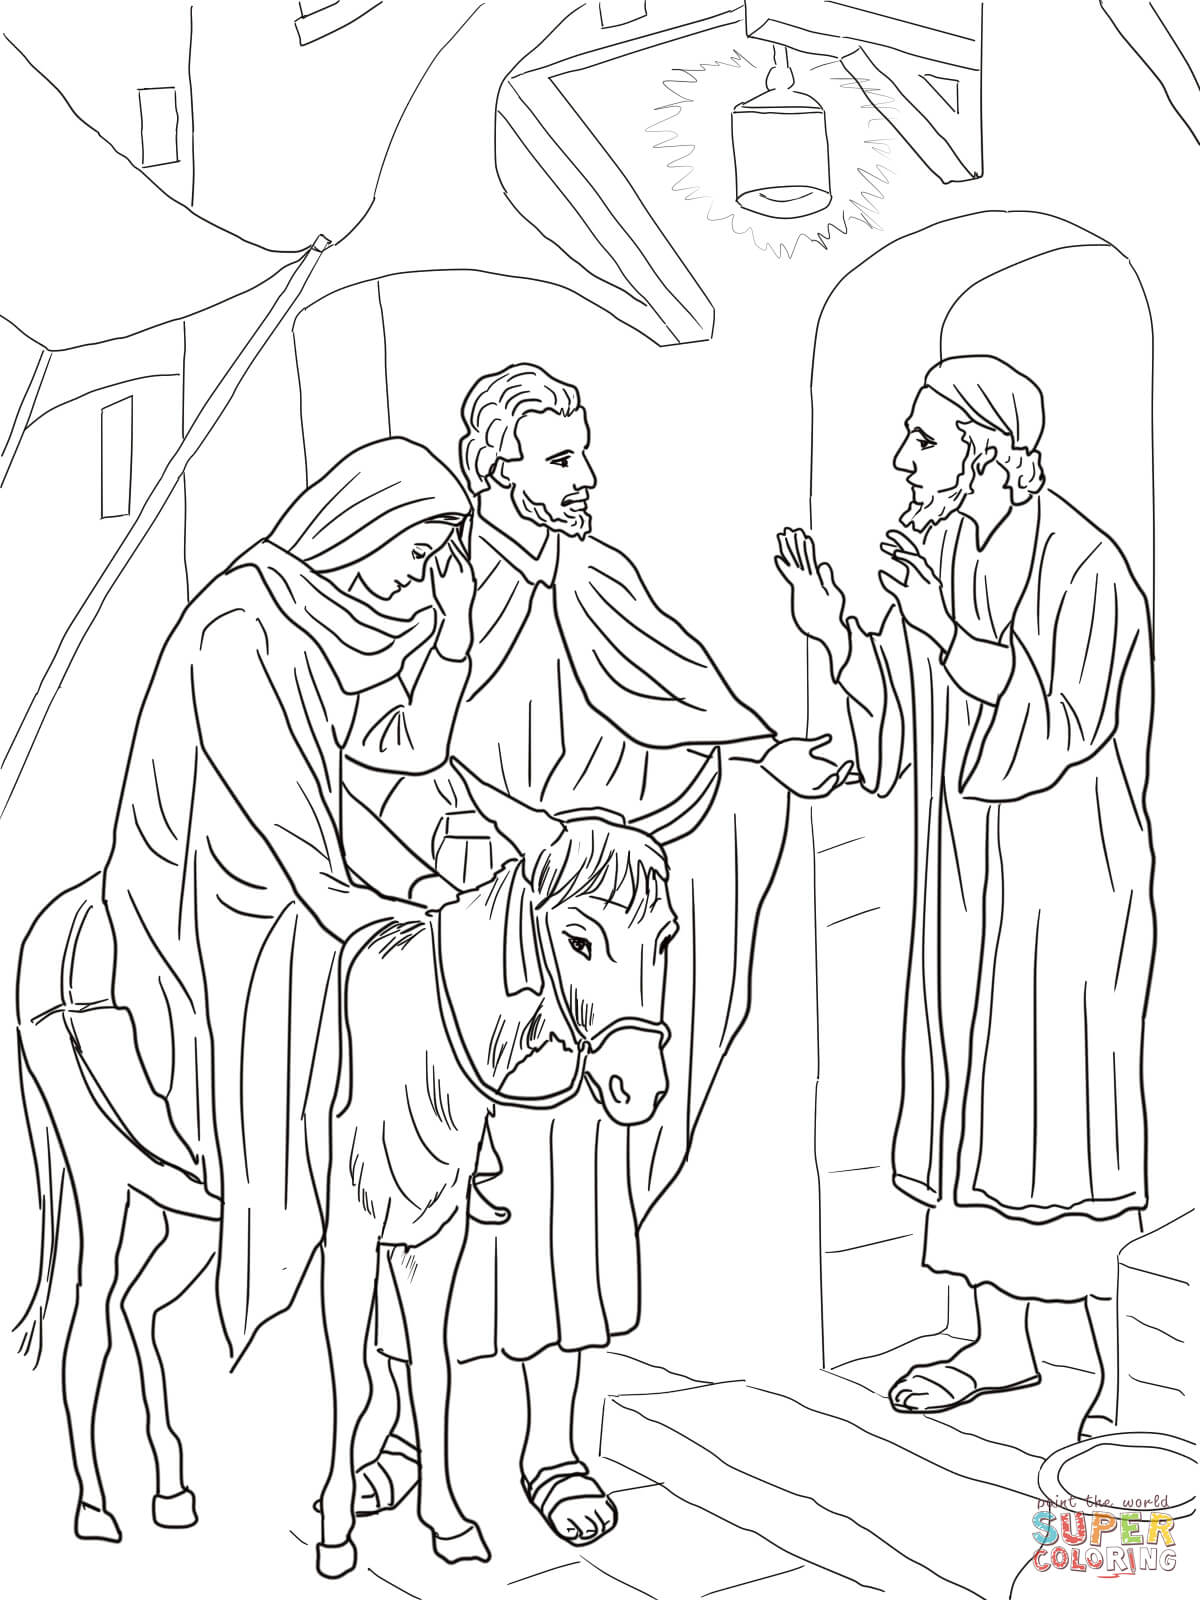 No Room at the Inn for Mary and Joseph coloring page